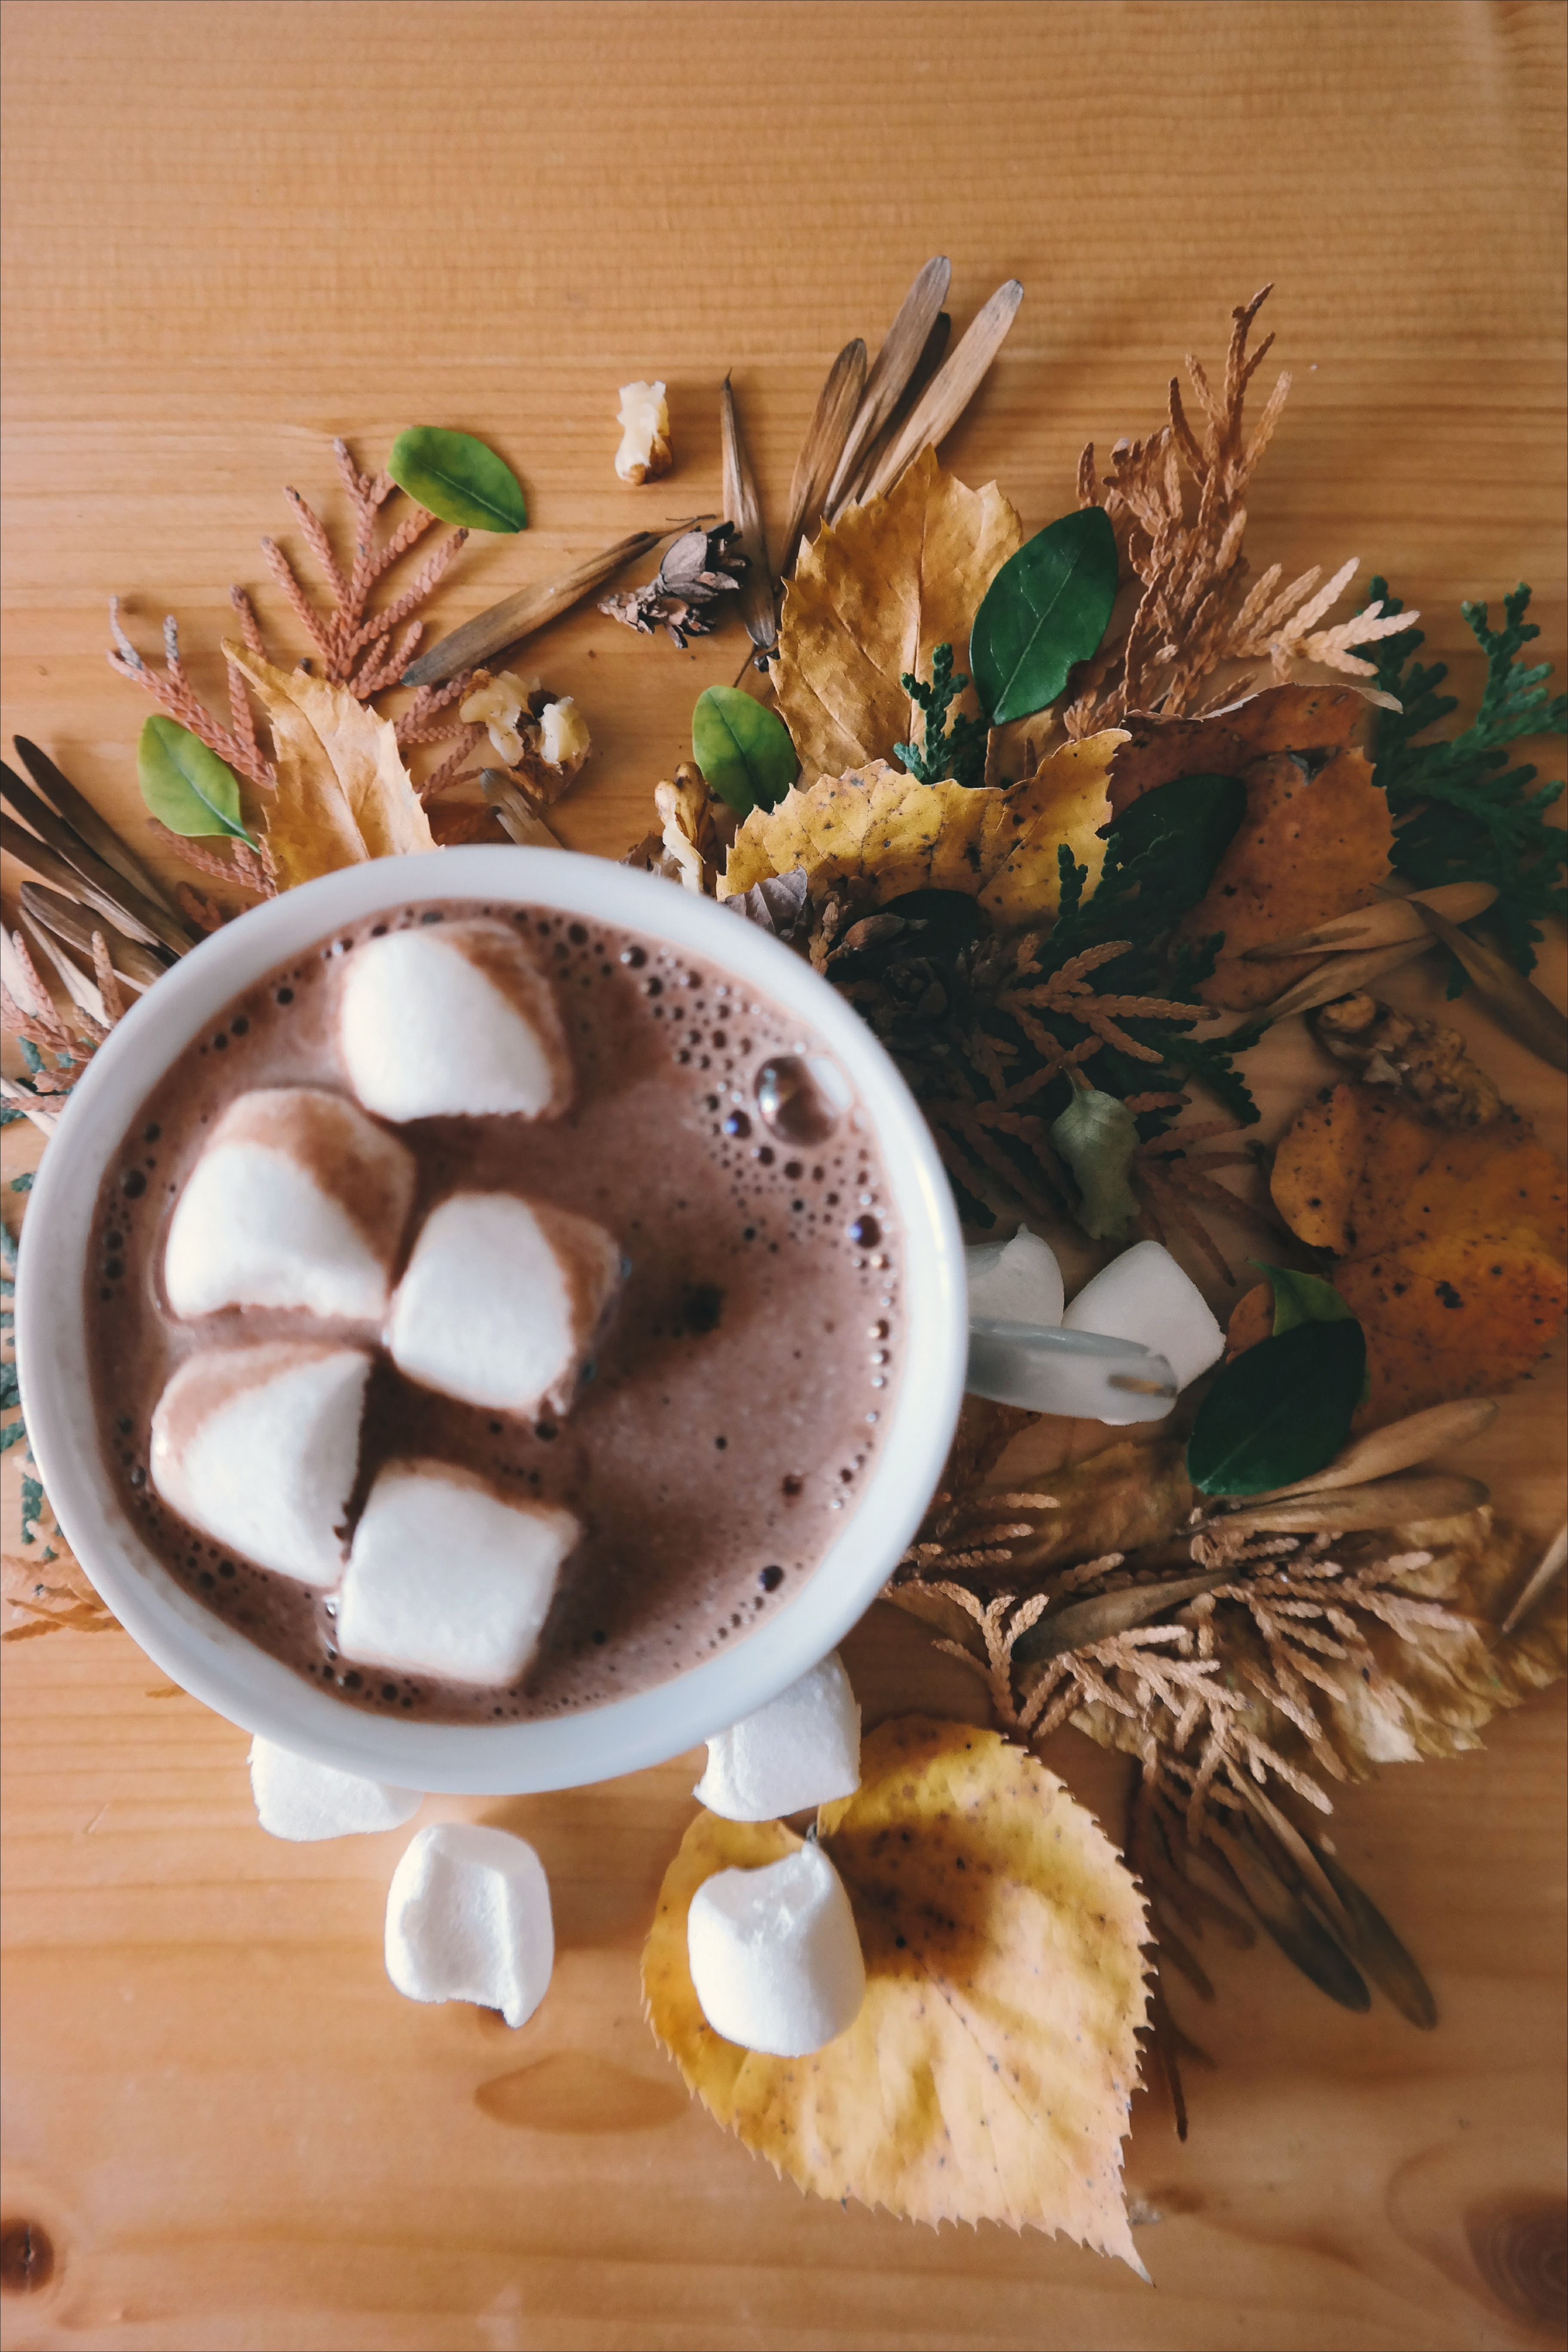 Marshmallows in a cup of hot chocolate, sitting on top of flowers.